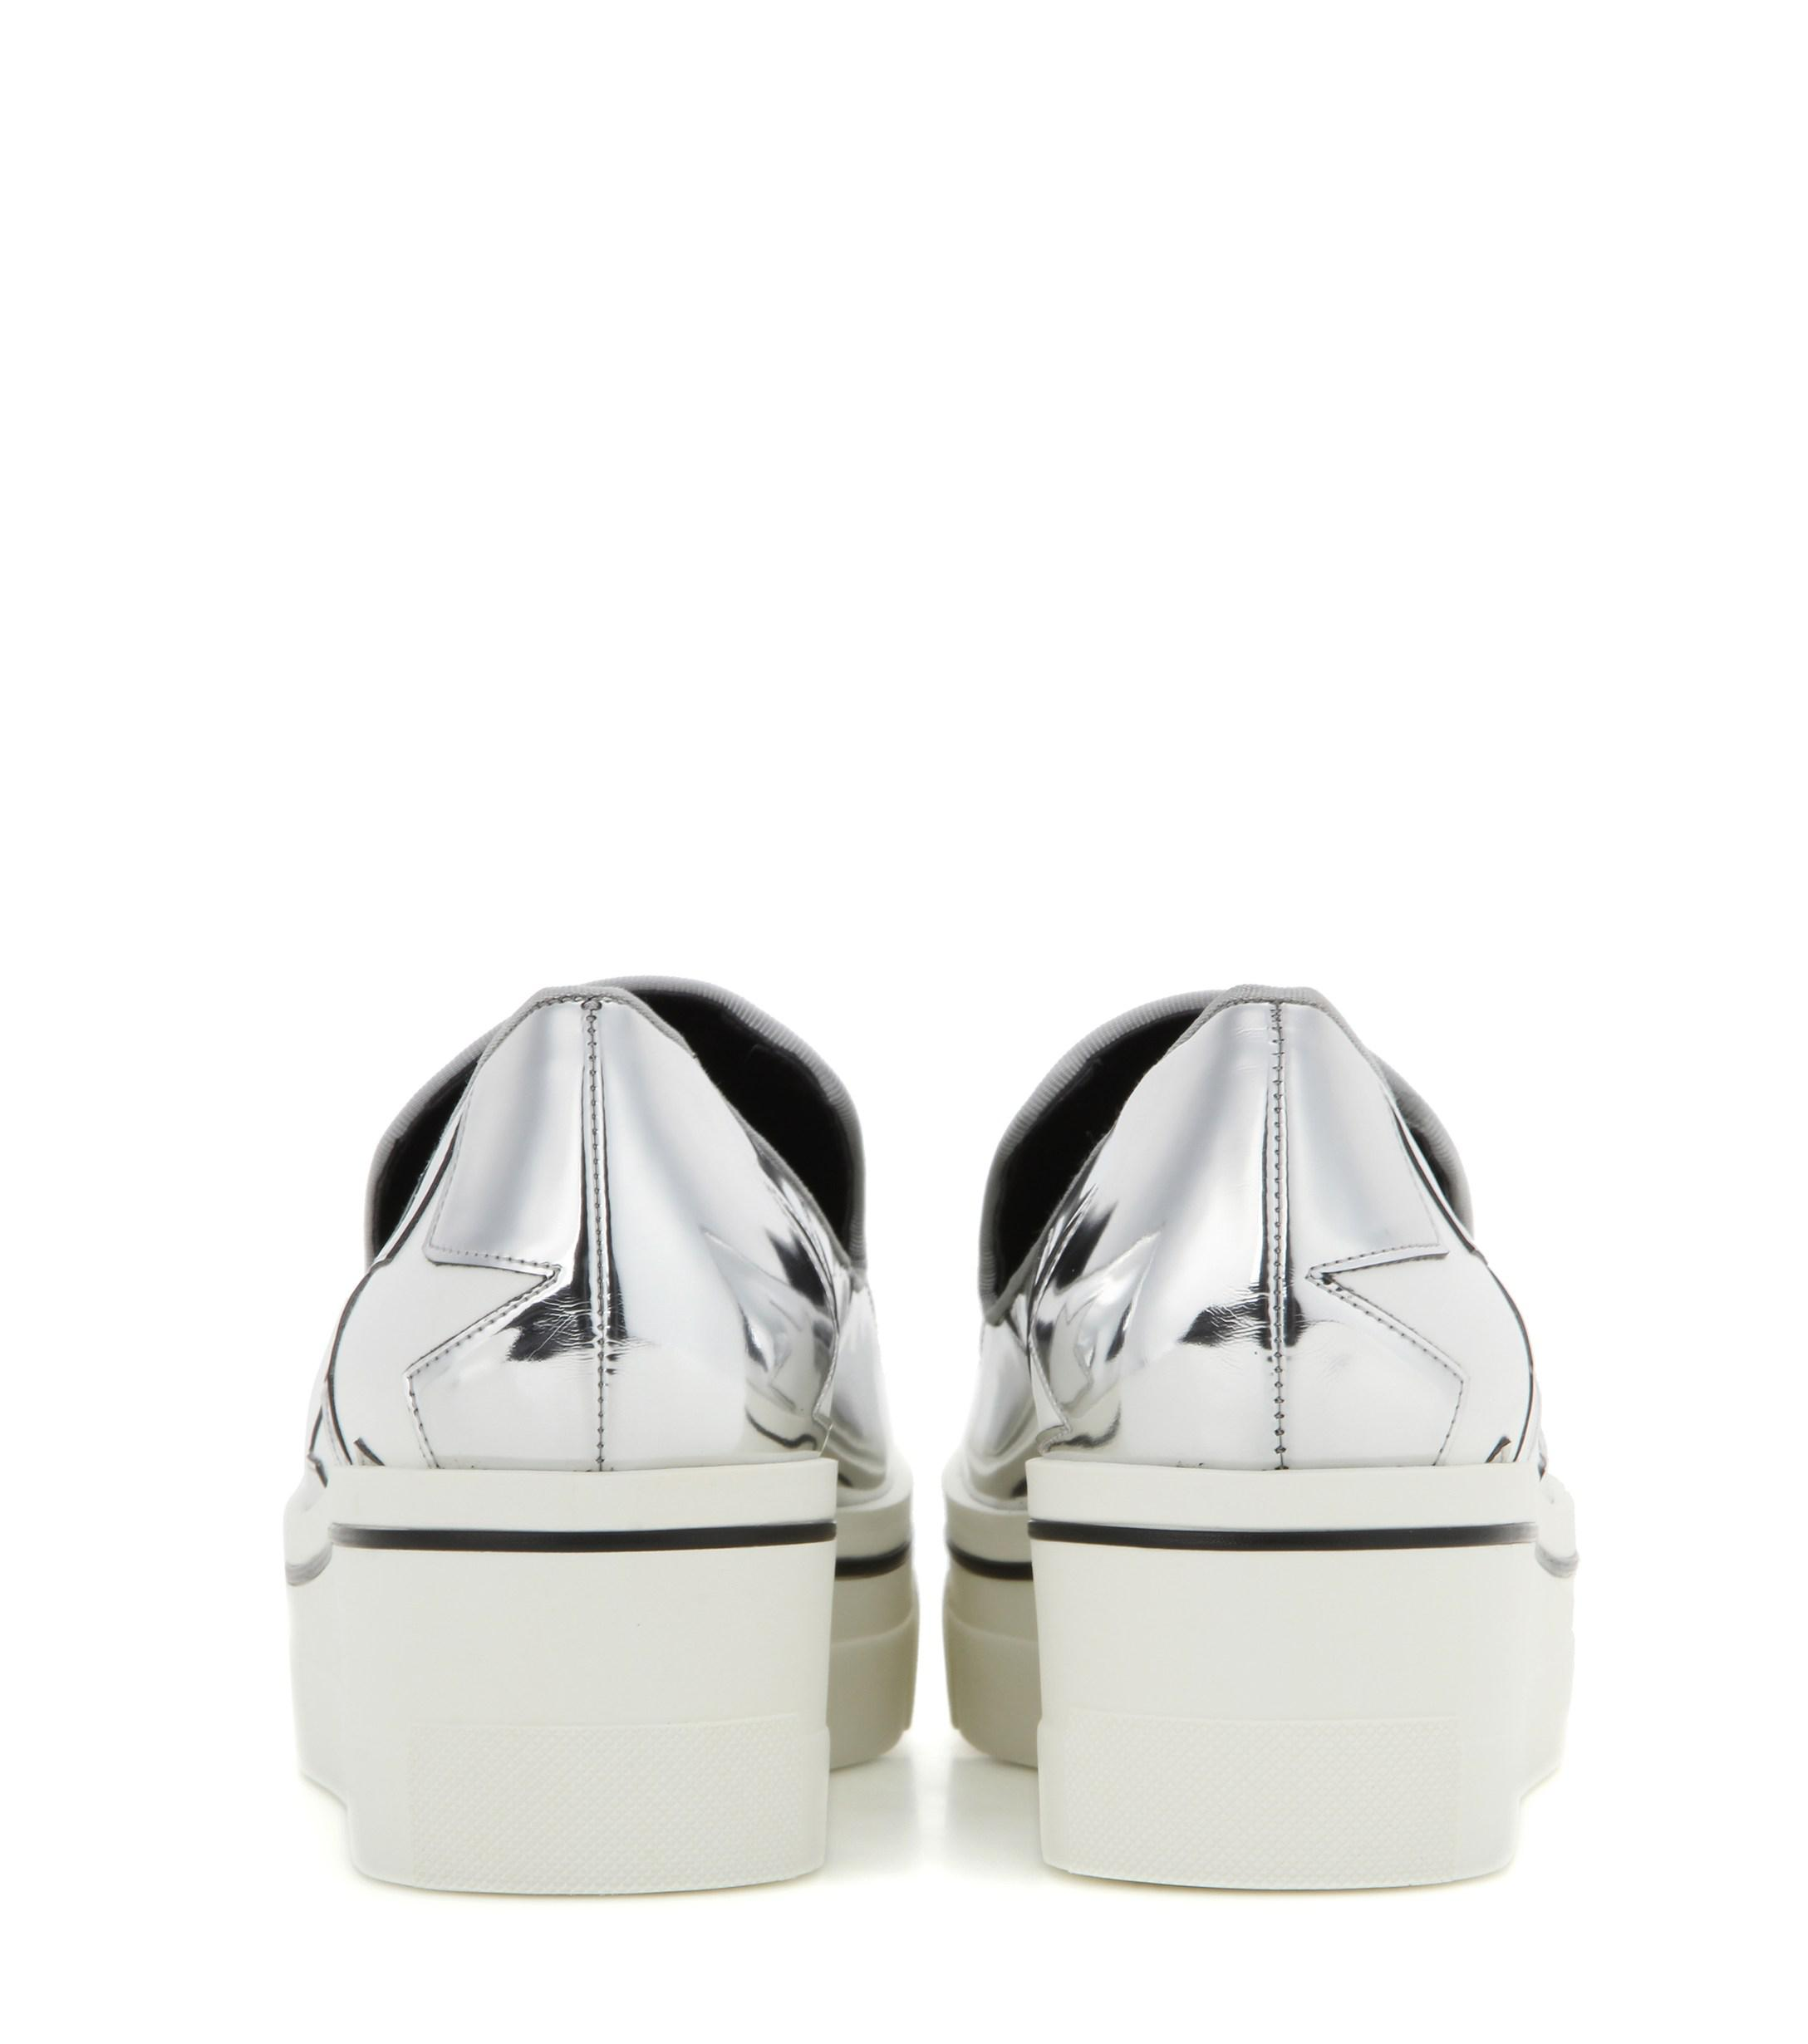 4ce923c0d3e Lyst - Stella McCartney Star Binx Metallic Platform Loafers in Metallic